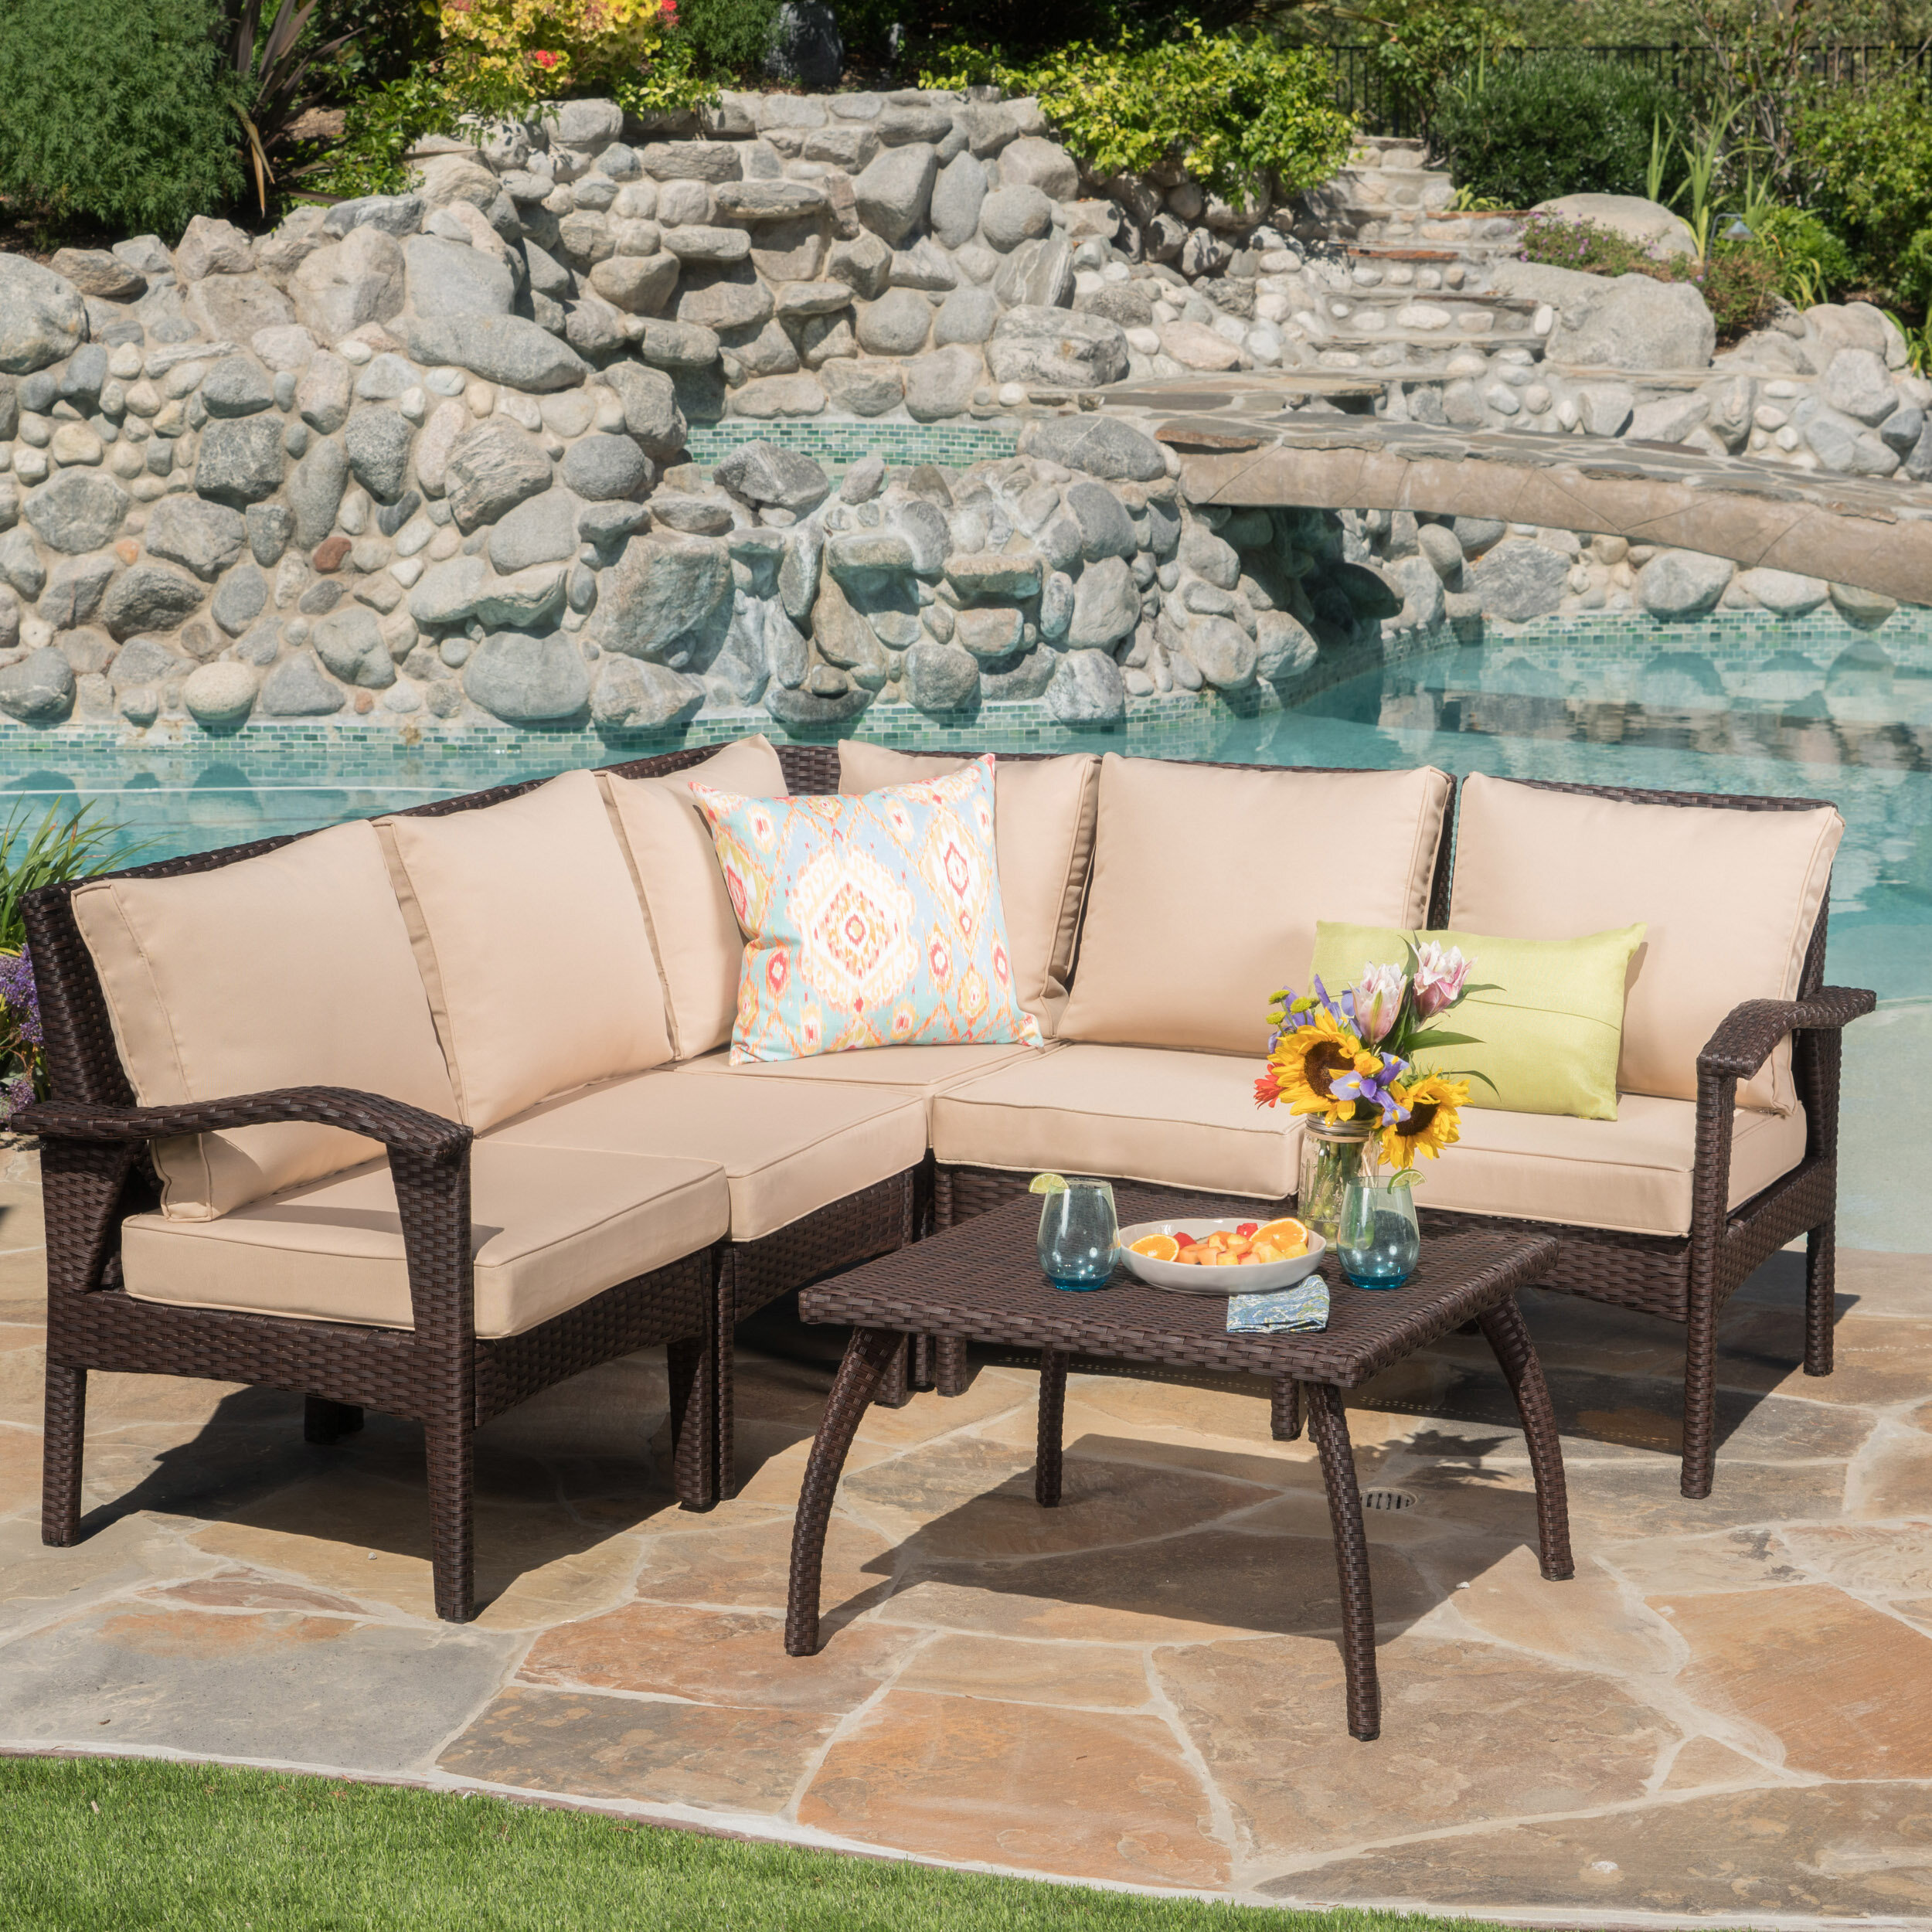 Beachcrest Home Townsend 6 Piece Sectional Set With Cushions U0026 Reviews |  Wayfair